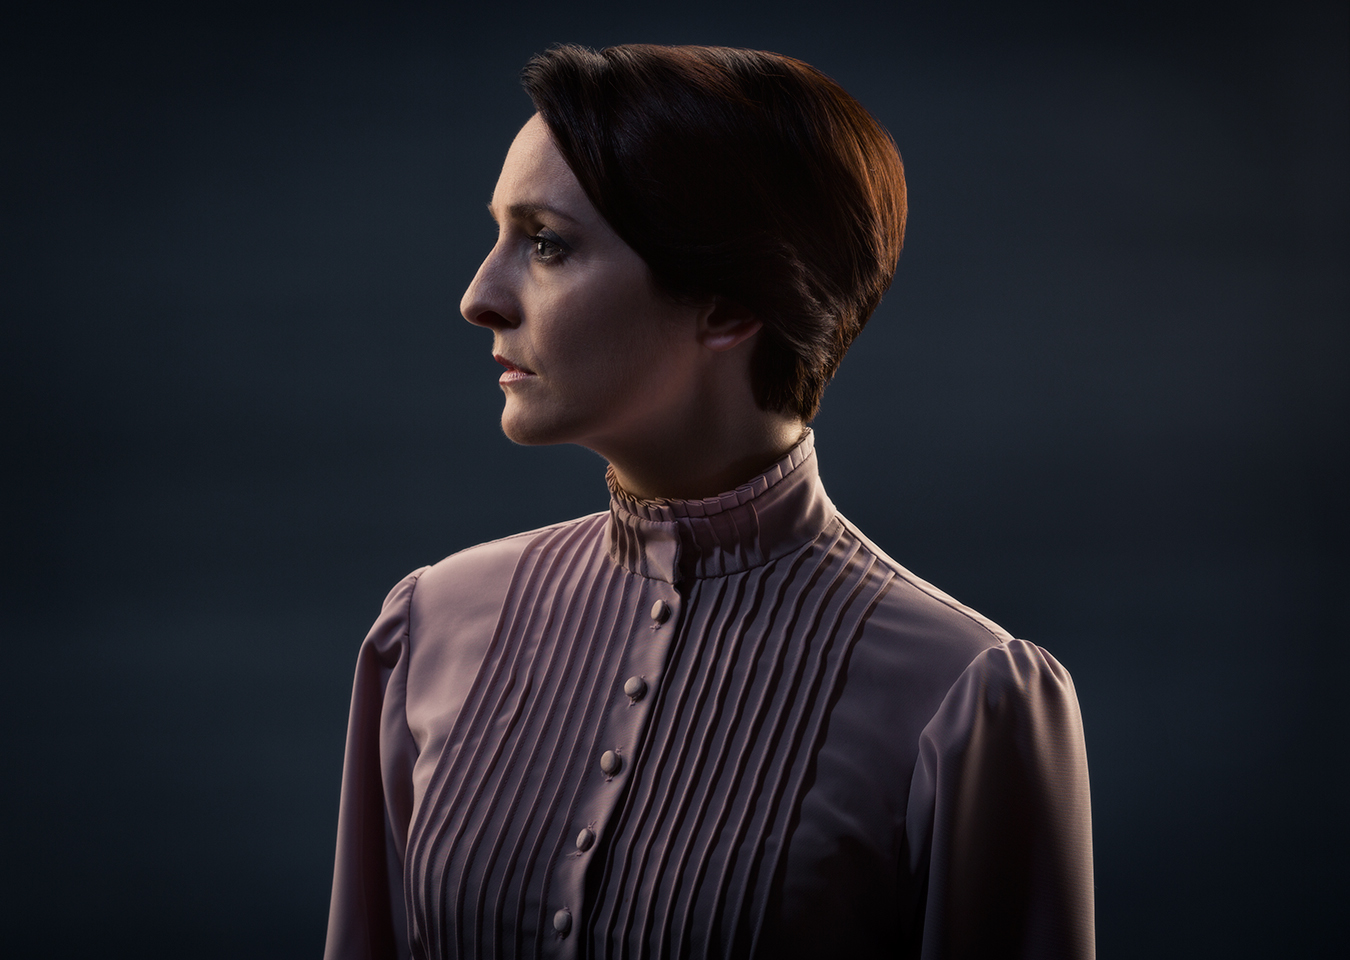 Actor Nicola Daley as Hedda Gabler for the Lyceum theatre